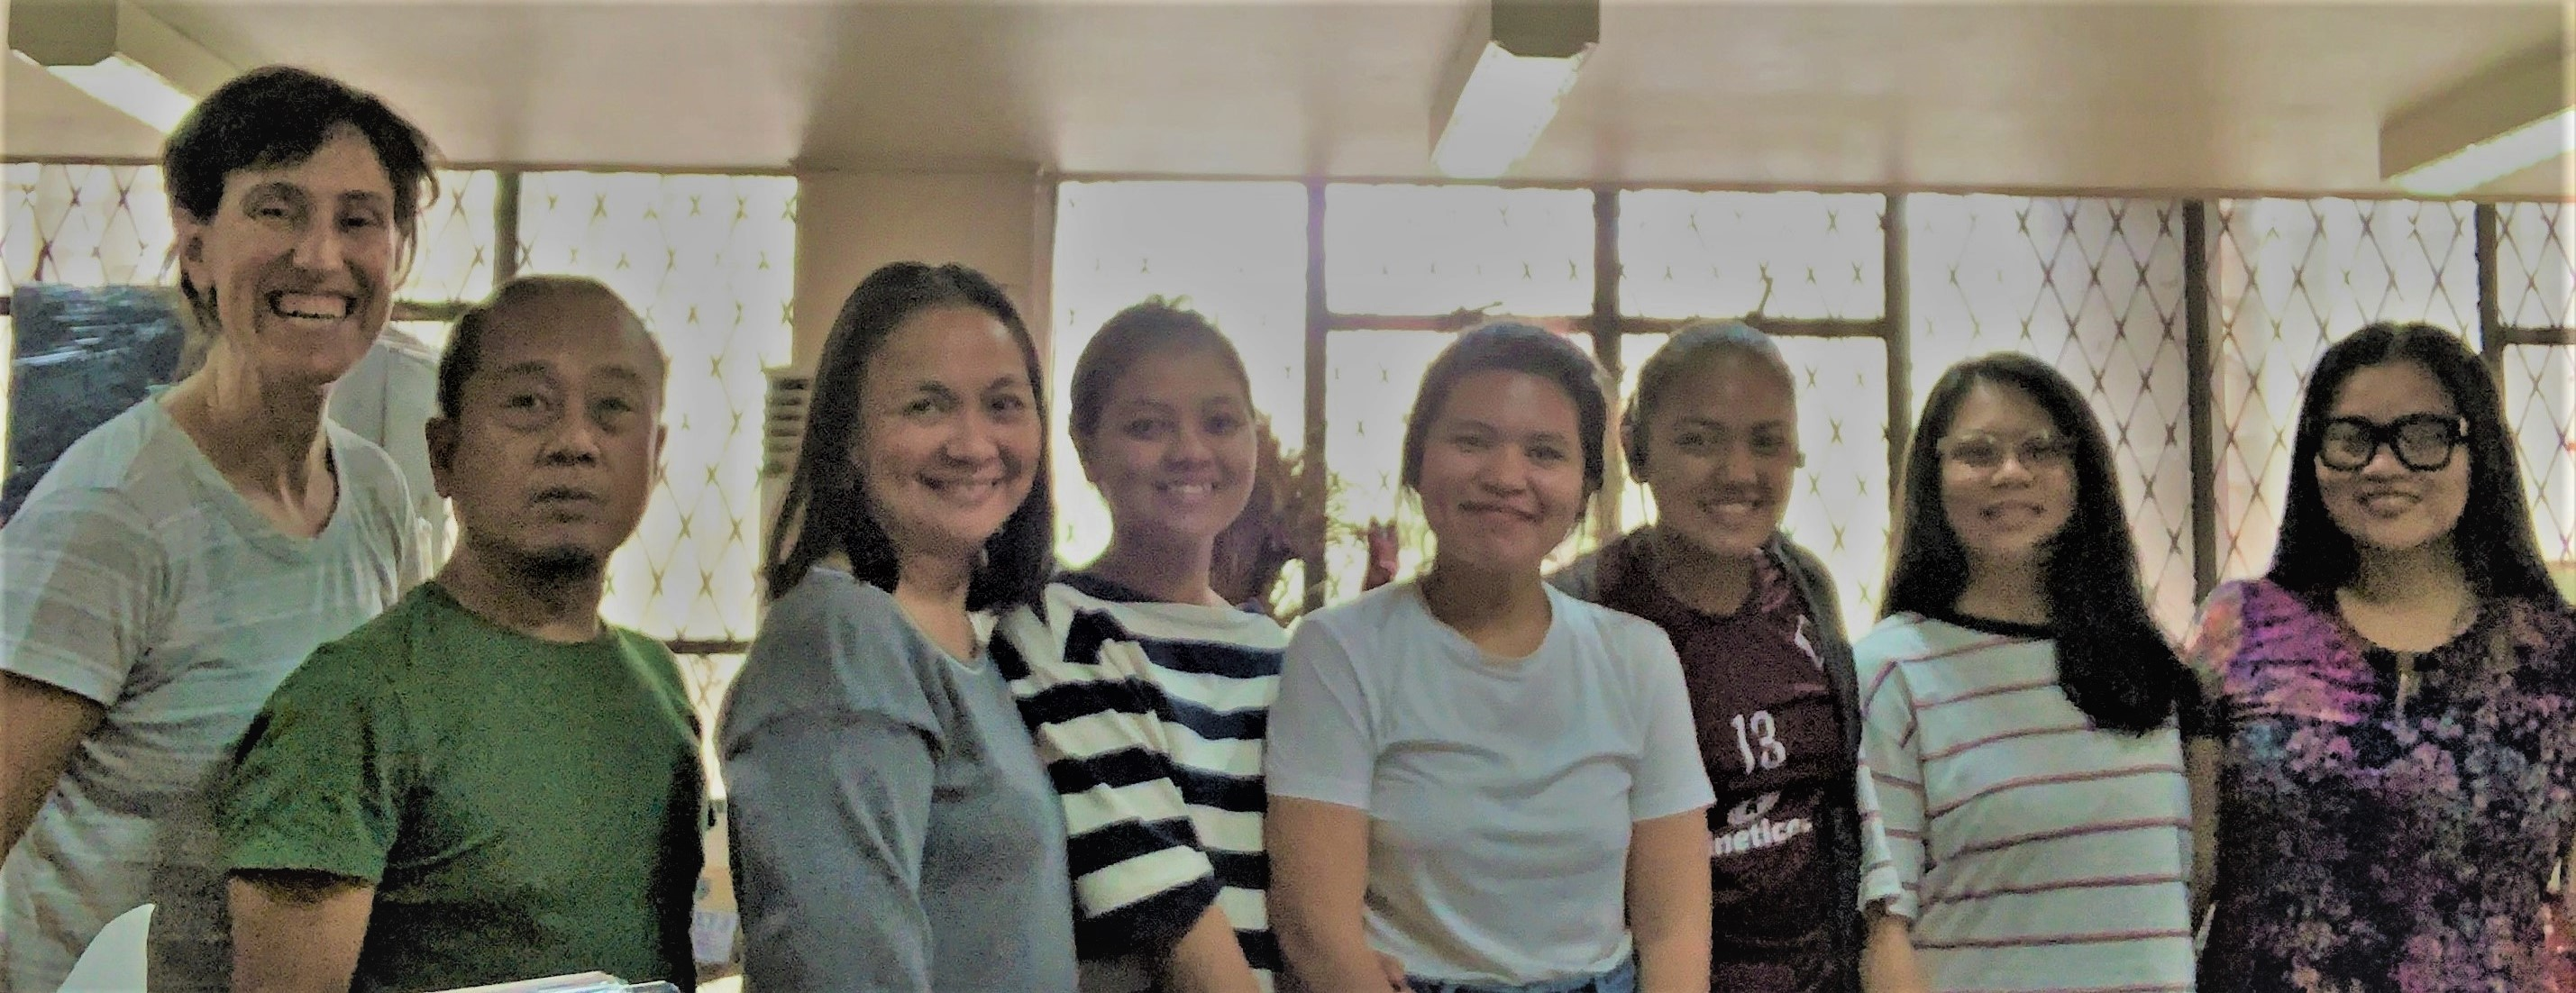 Dr. Karen Miller (at left) with members of the faculty and staff at the Center for International Studies, University of the Philippines